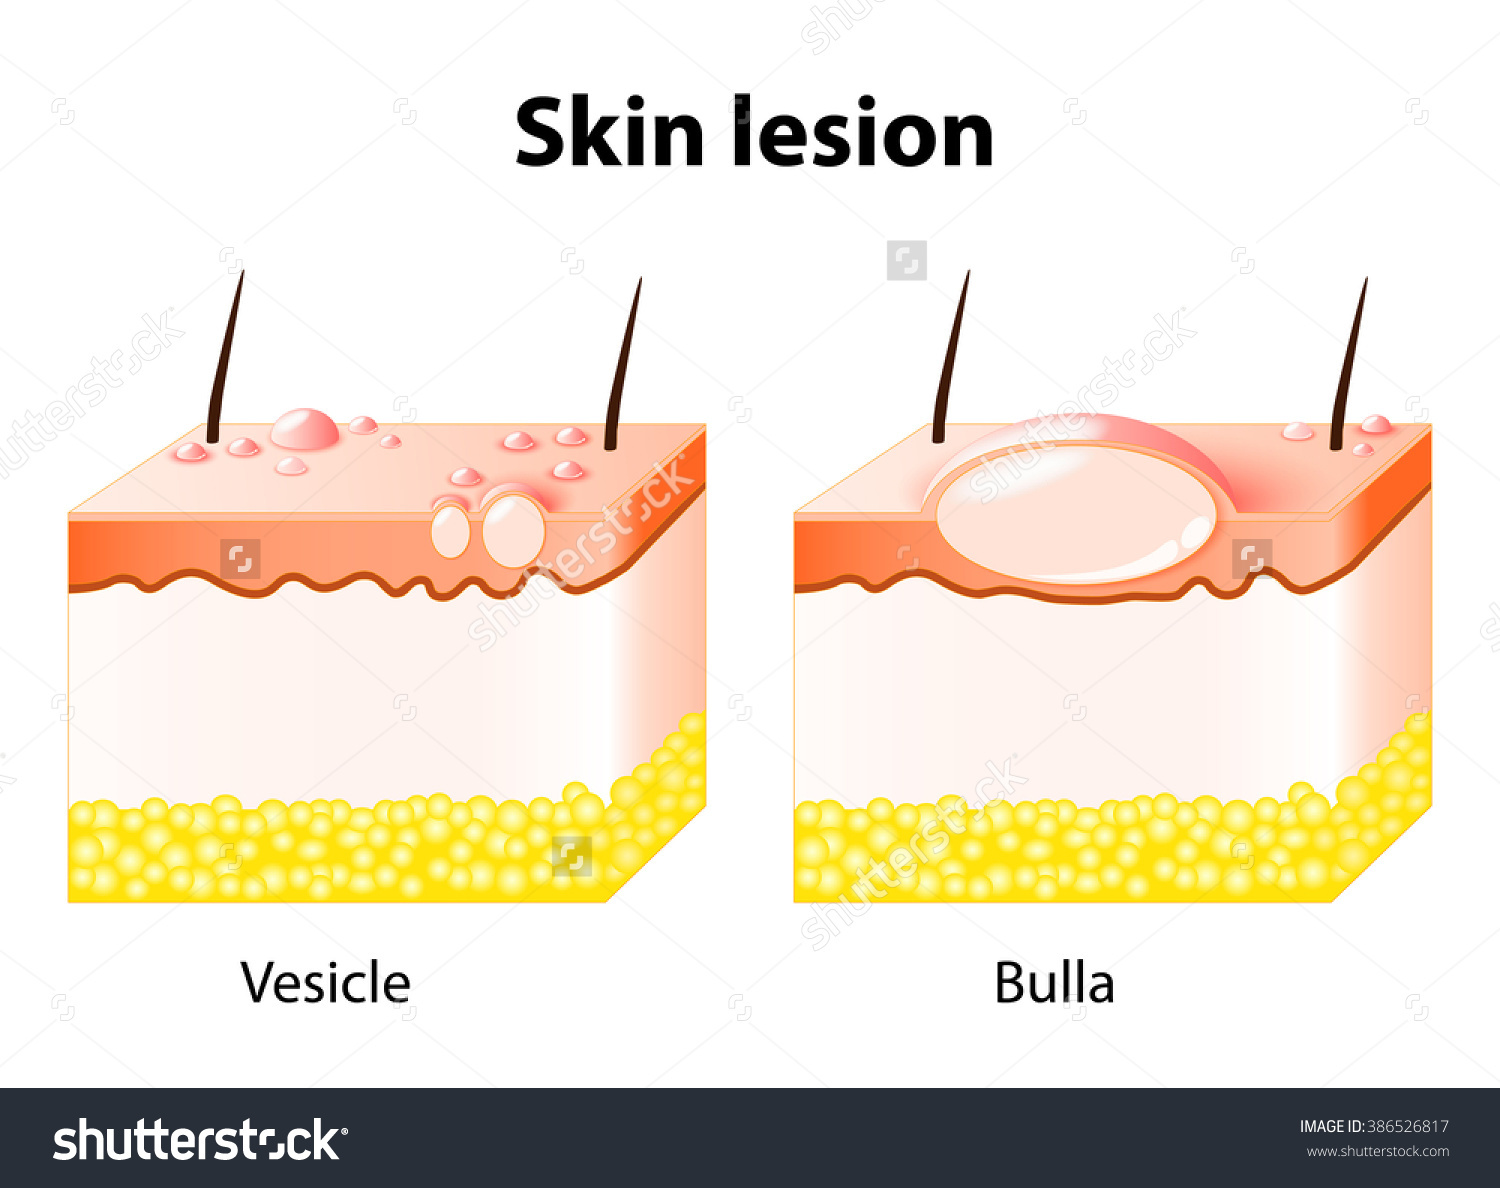 Vesicle Bulla Skin Lesion Stock Illustration 386526817.